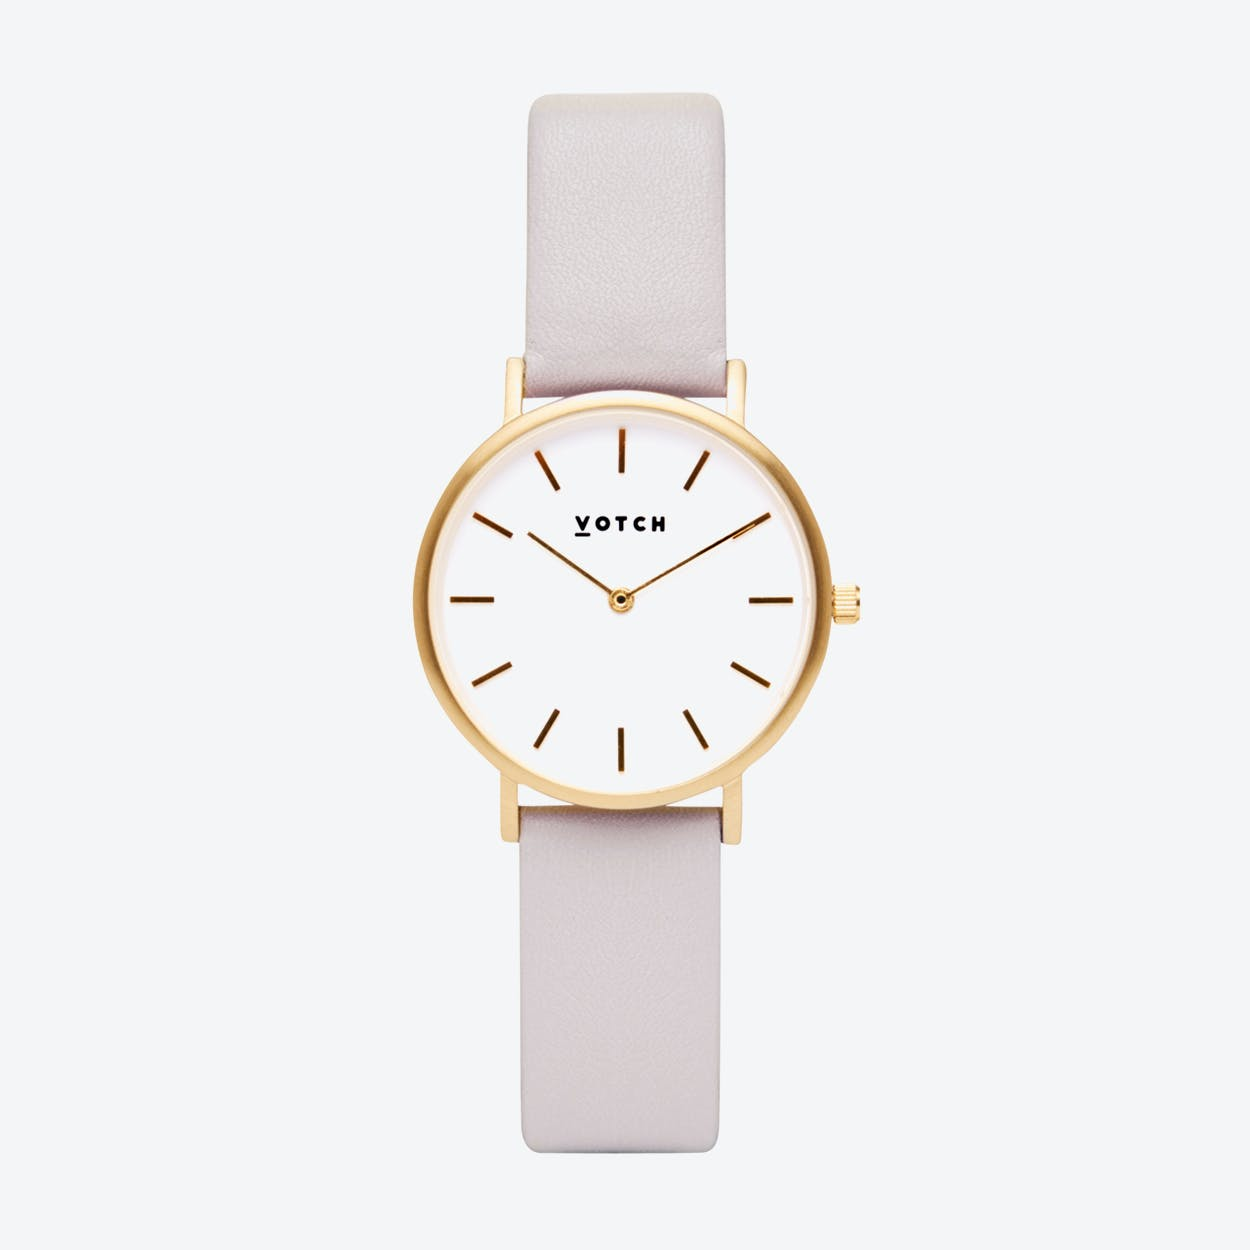 Classic Petite Watch in Gold with White Face and Light Grey Vegan Leather Strap, 33mm